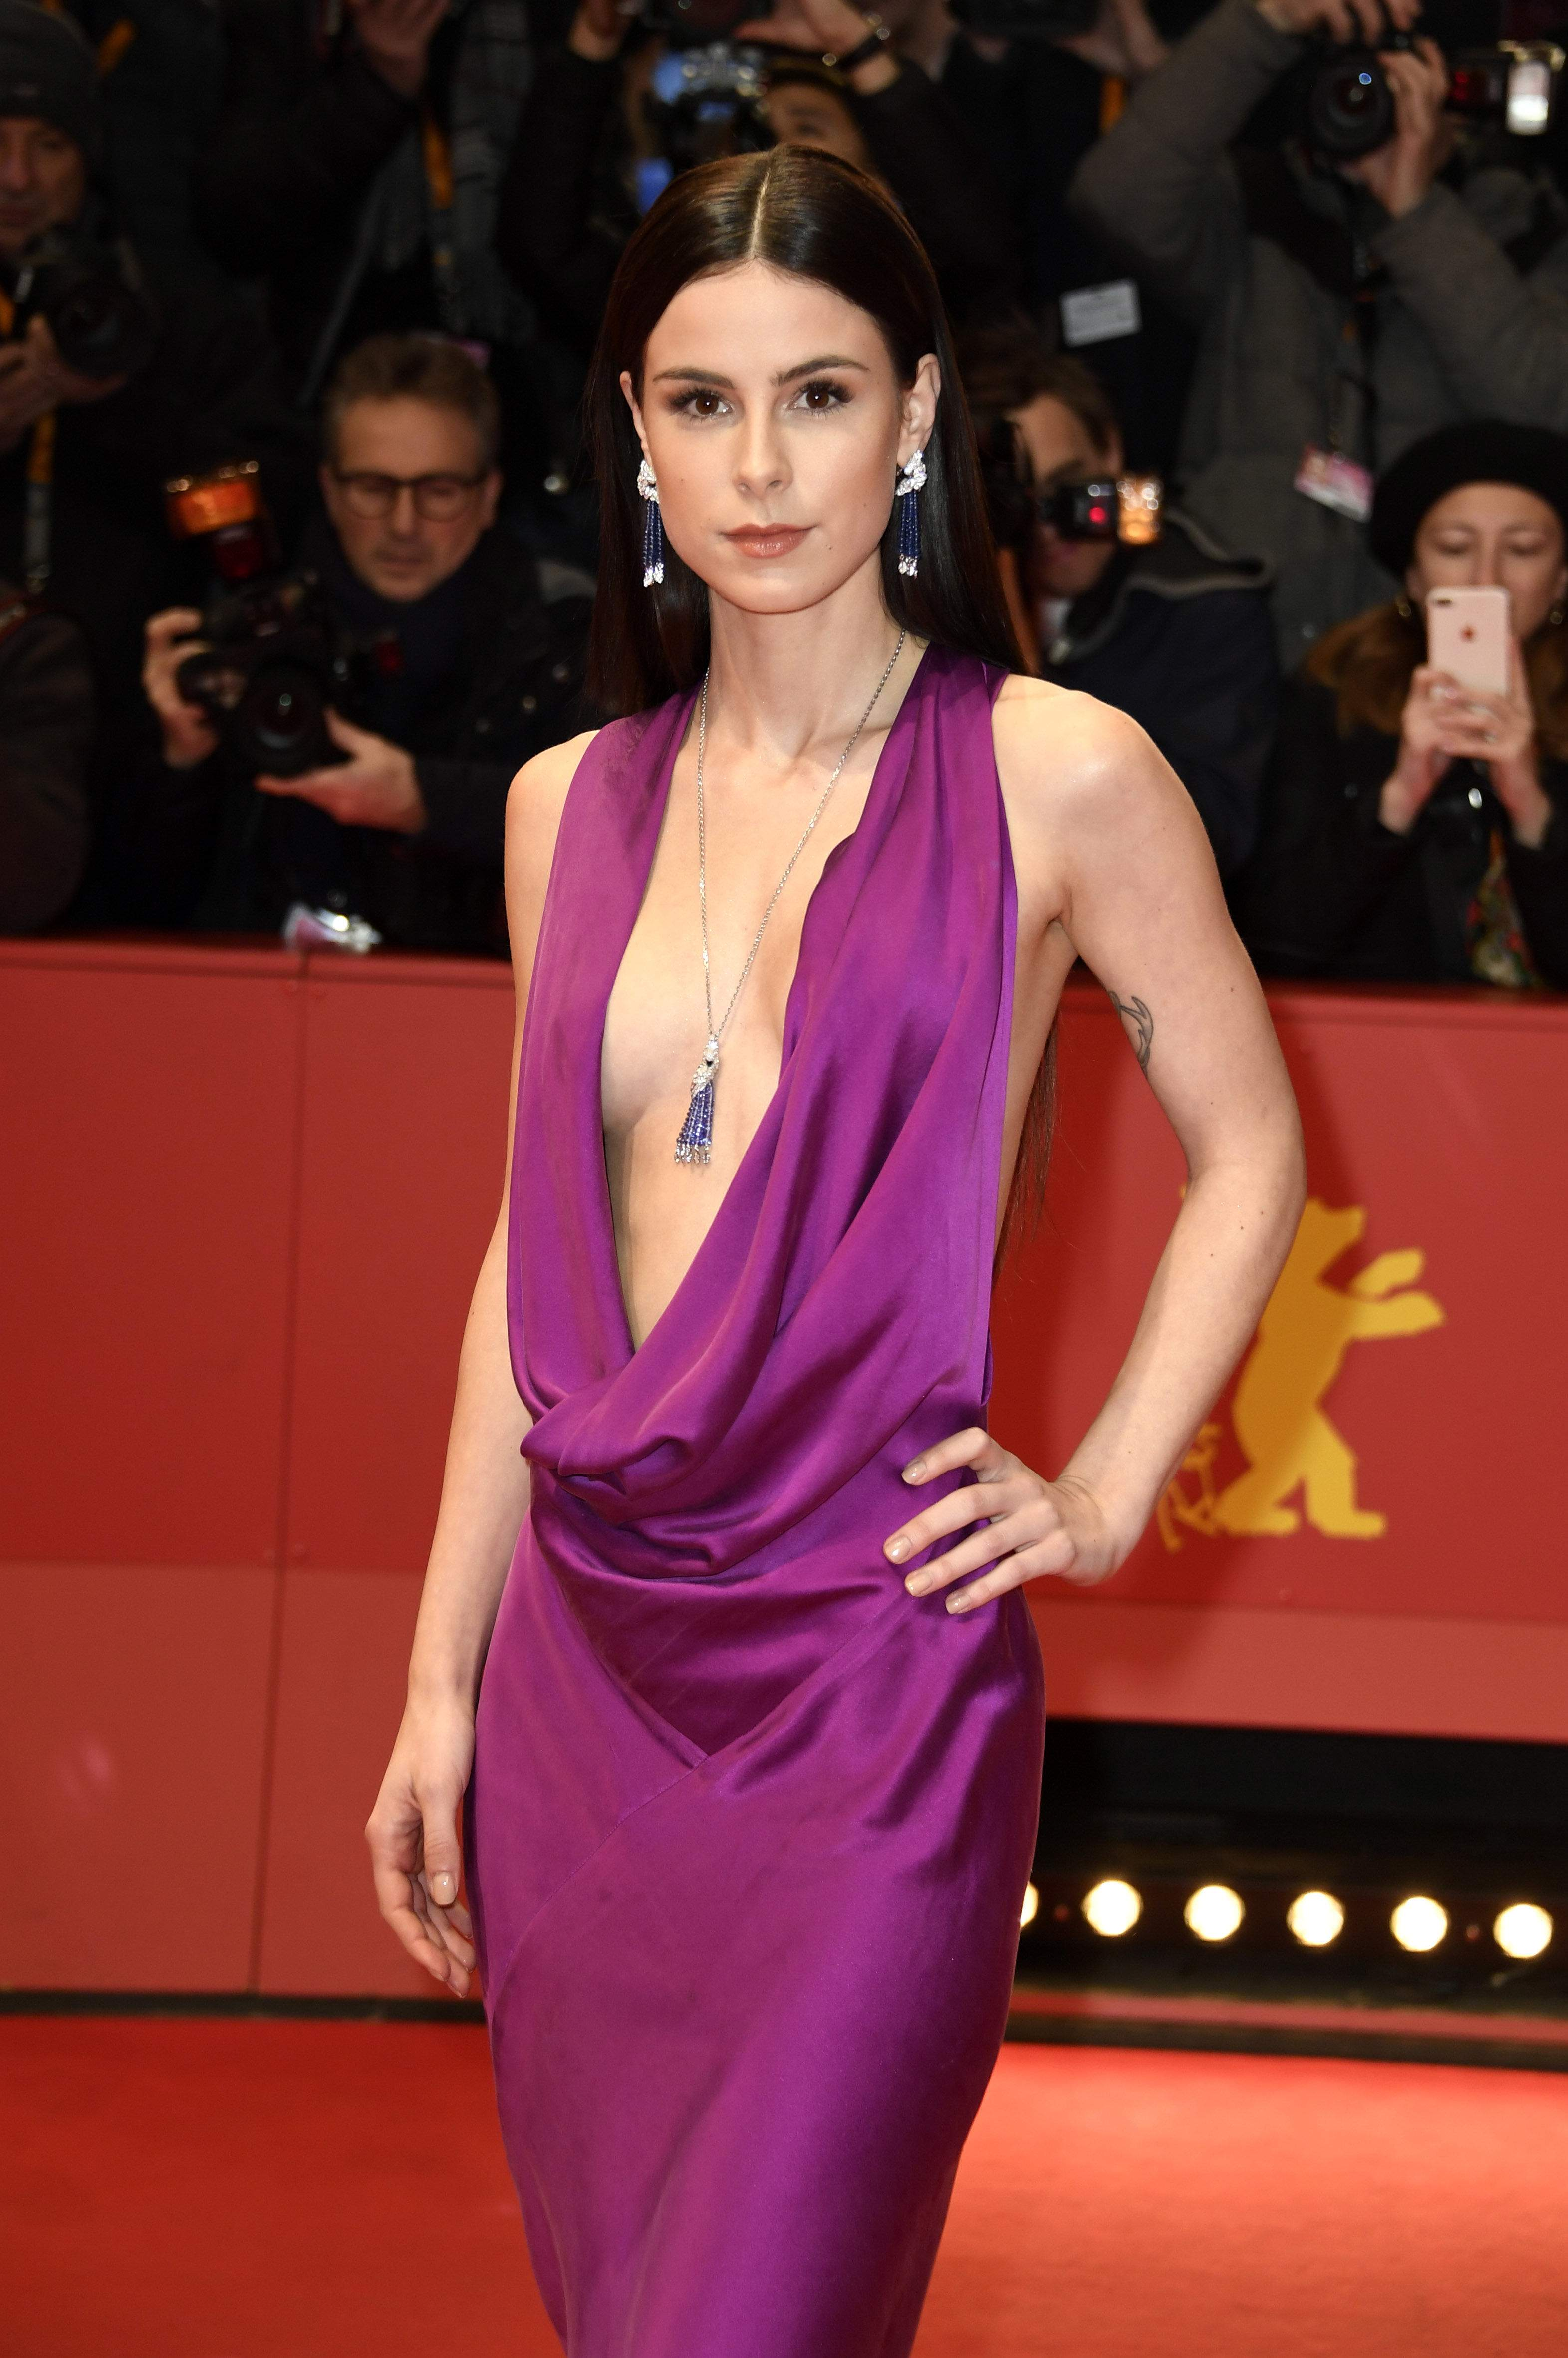 TheFappening Lena Meyer-landrut nudes (93 foto and video), Tits, Sideboobs, Feet, butt 2015